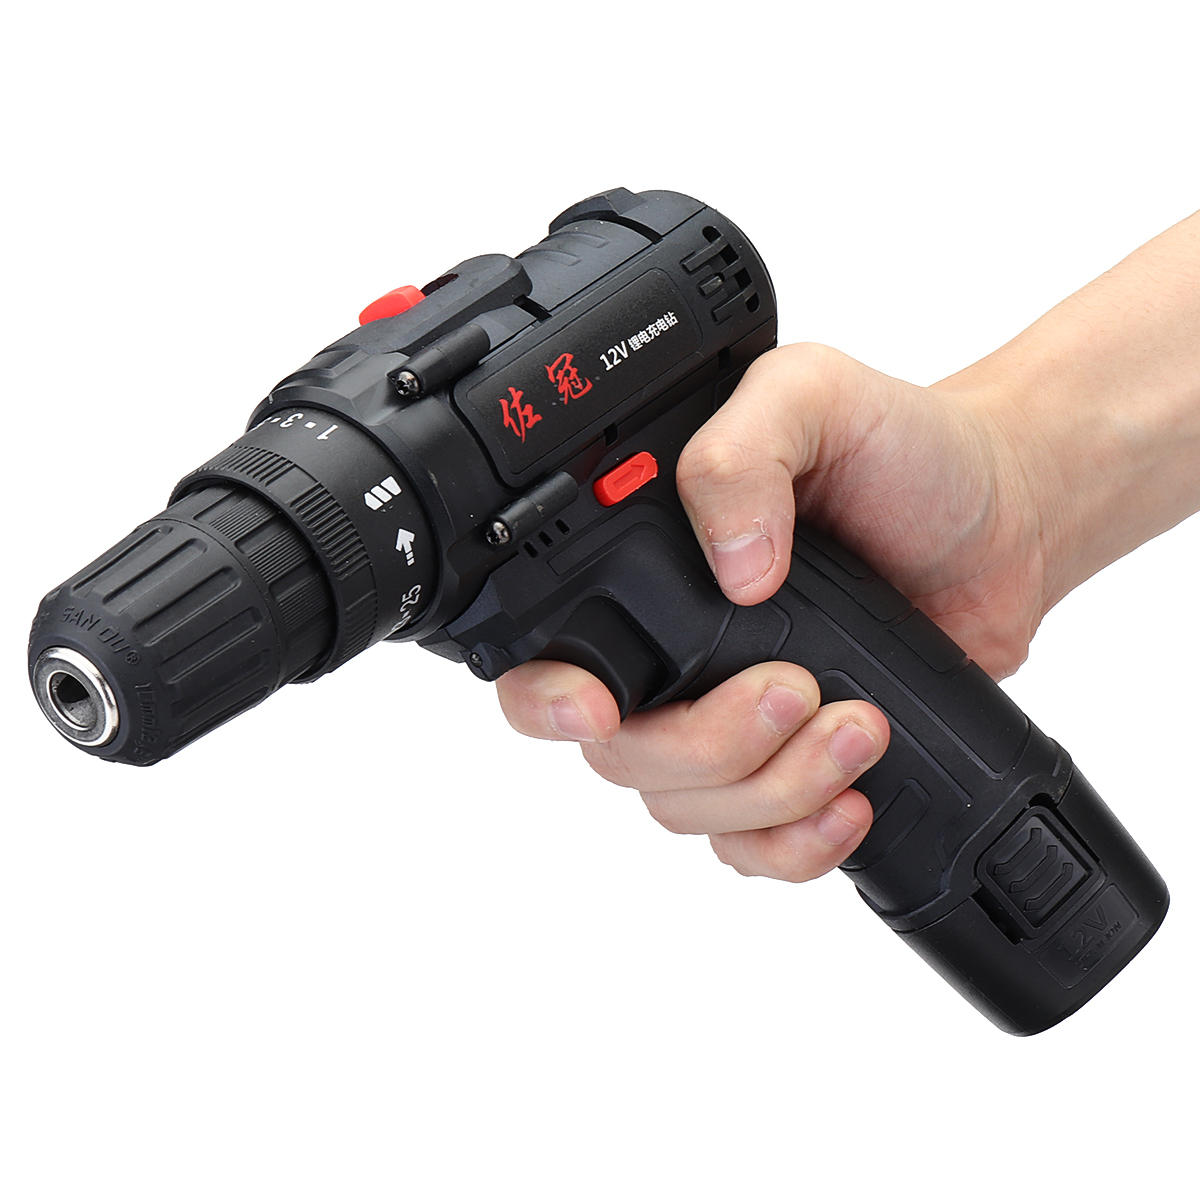 Shunzao 12V Cordless Multi-purposed 3 In 1 Imact Drill Driver Hammer 30Nm Electric Screwdriver Drill 2000mAh Li-ion Battery from xiaomi youpin - 3